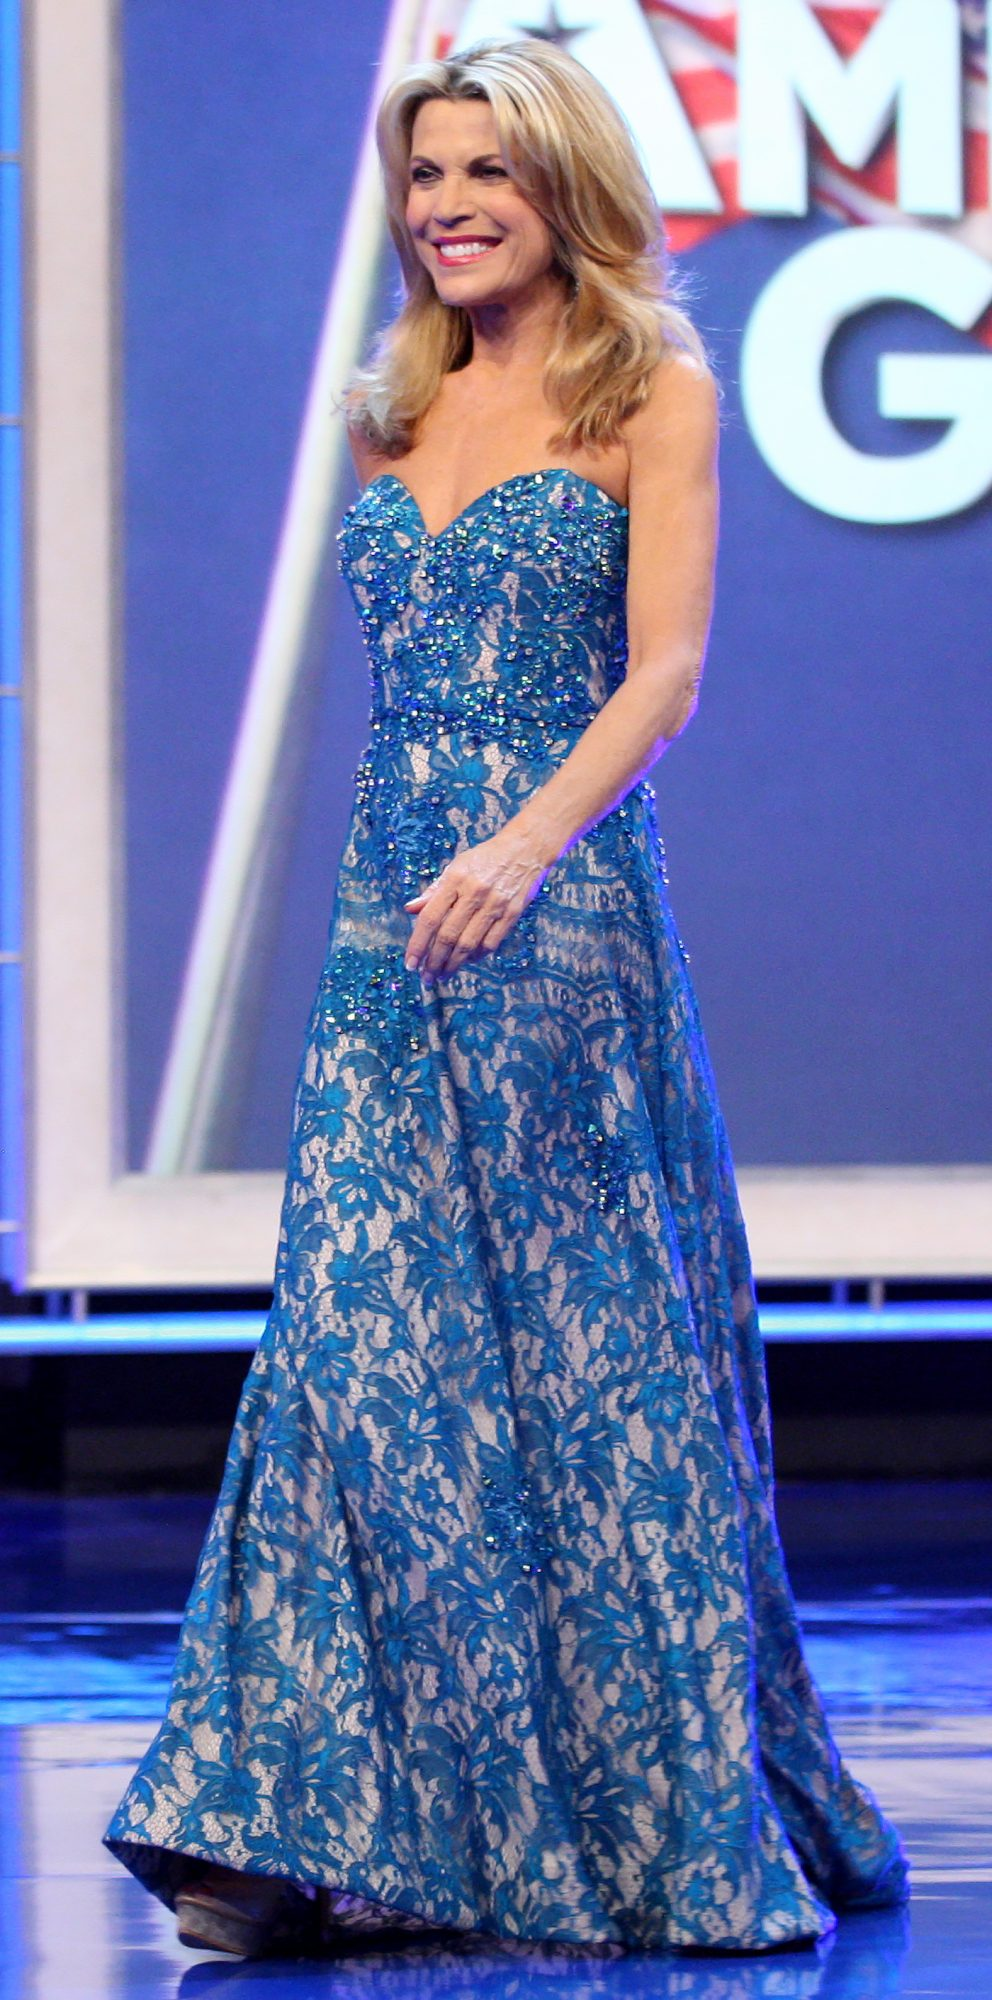 Vanna White Has Worn More Than 6500 Gowns on \'Wheel of Fortune\'—But ...